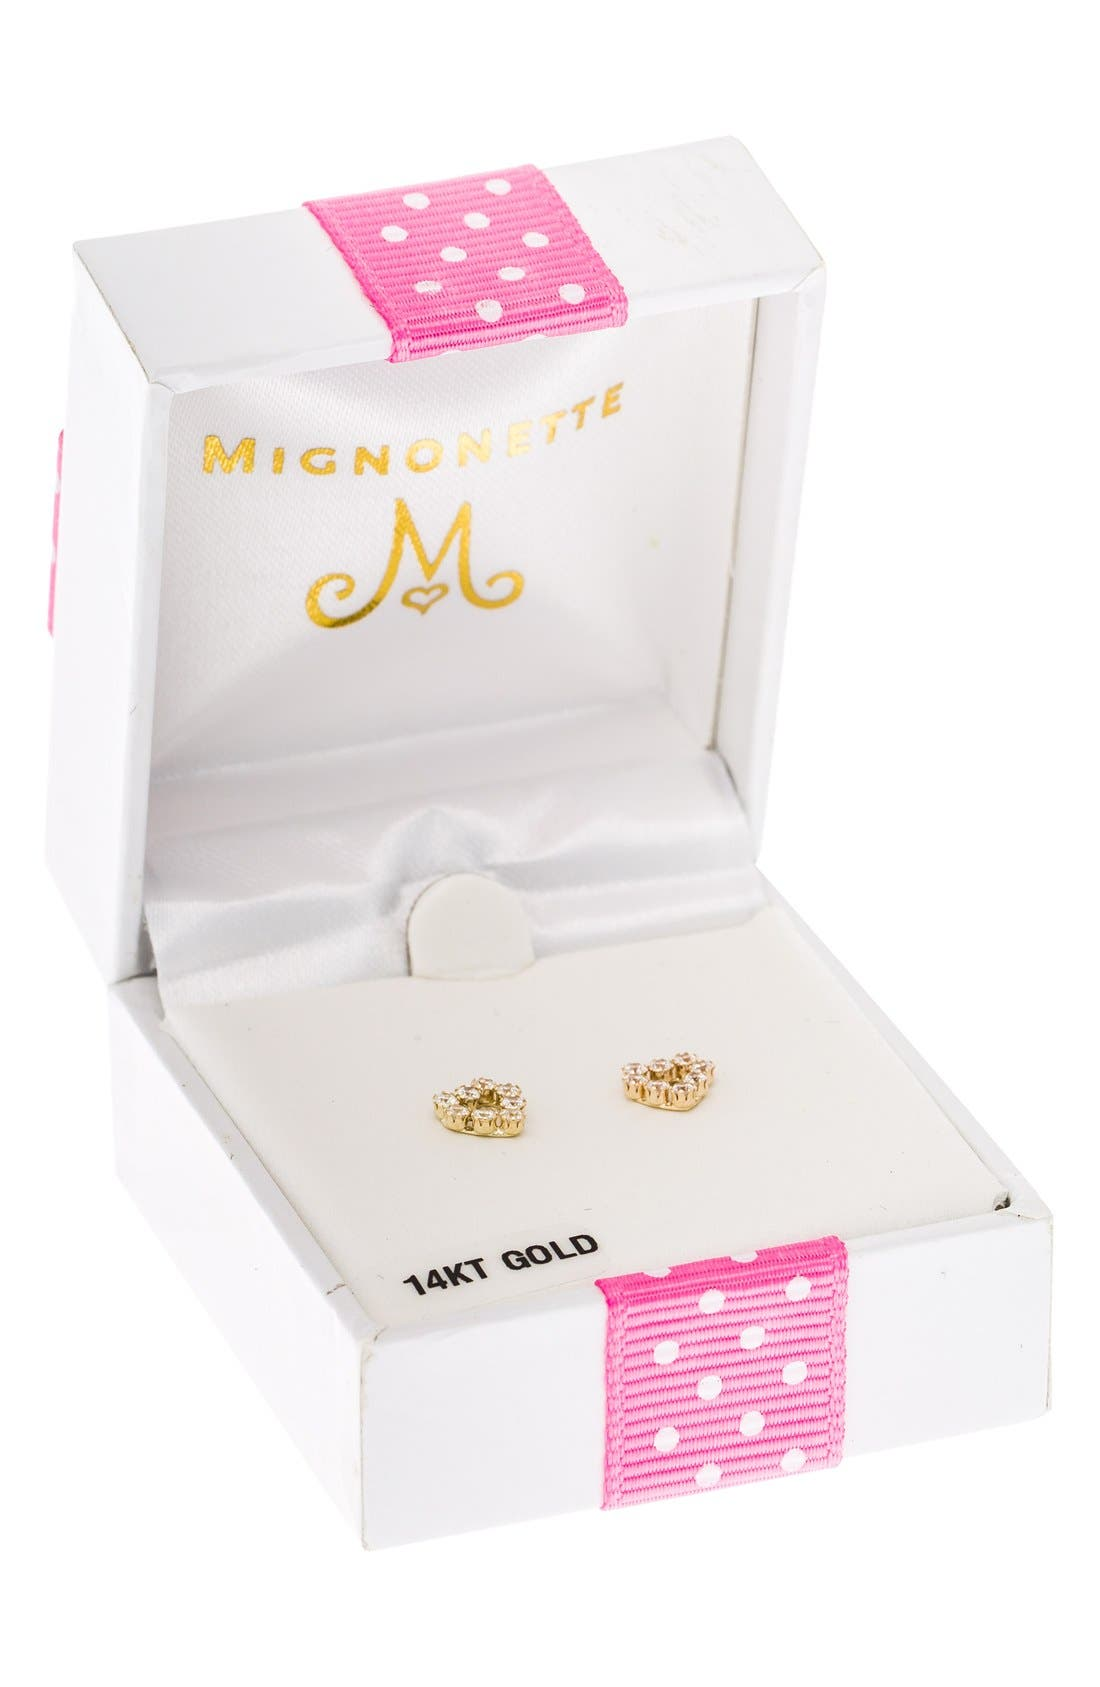 Alternate Image 3  - Mignonette 14k Gold & Cubic Zirconia Heart Earrings (Baby Girls)